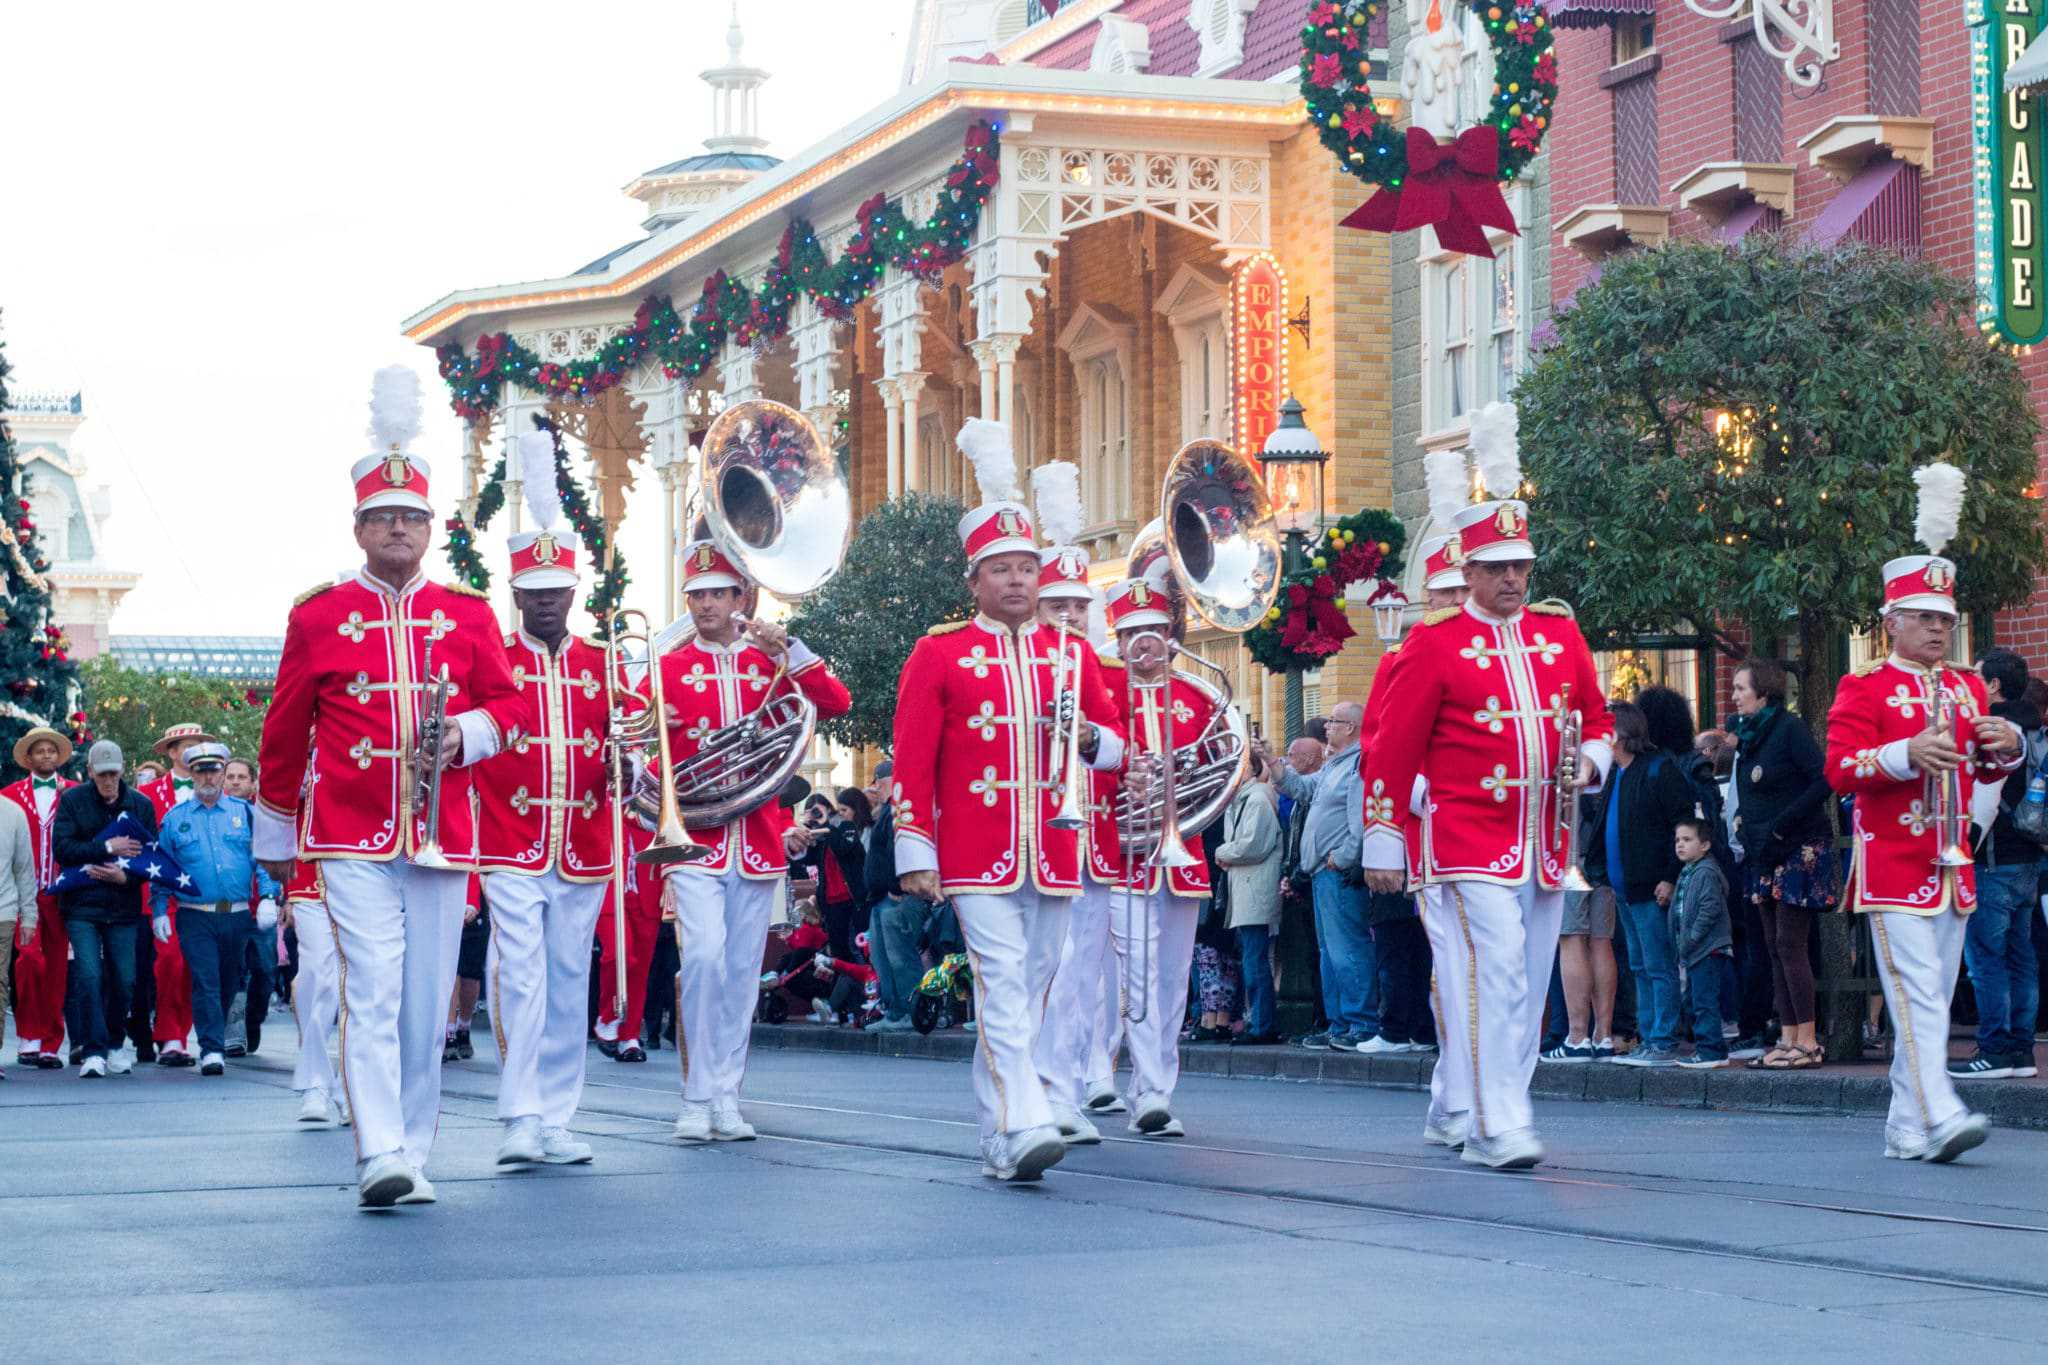 Marching Band at Disney